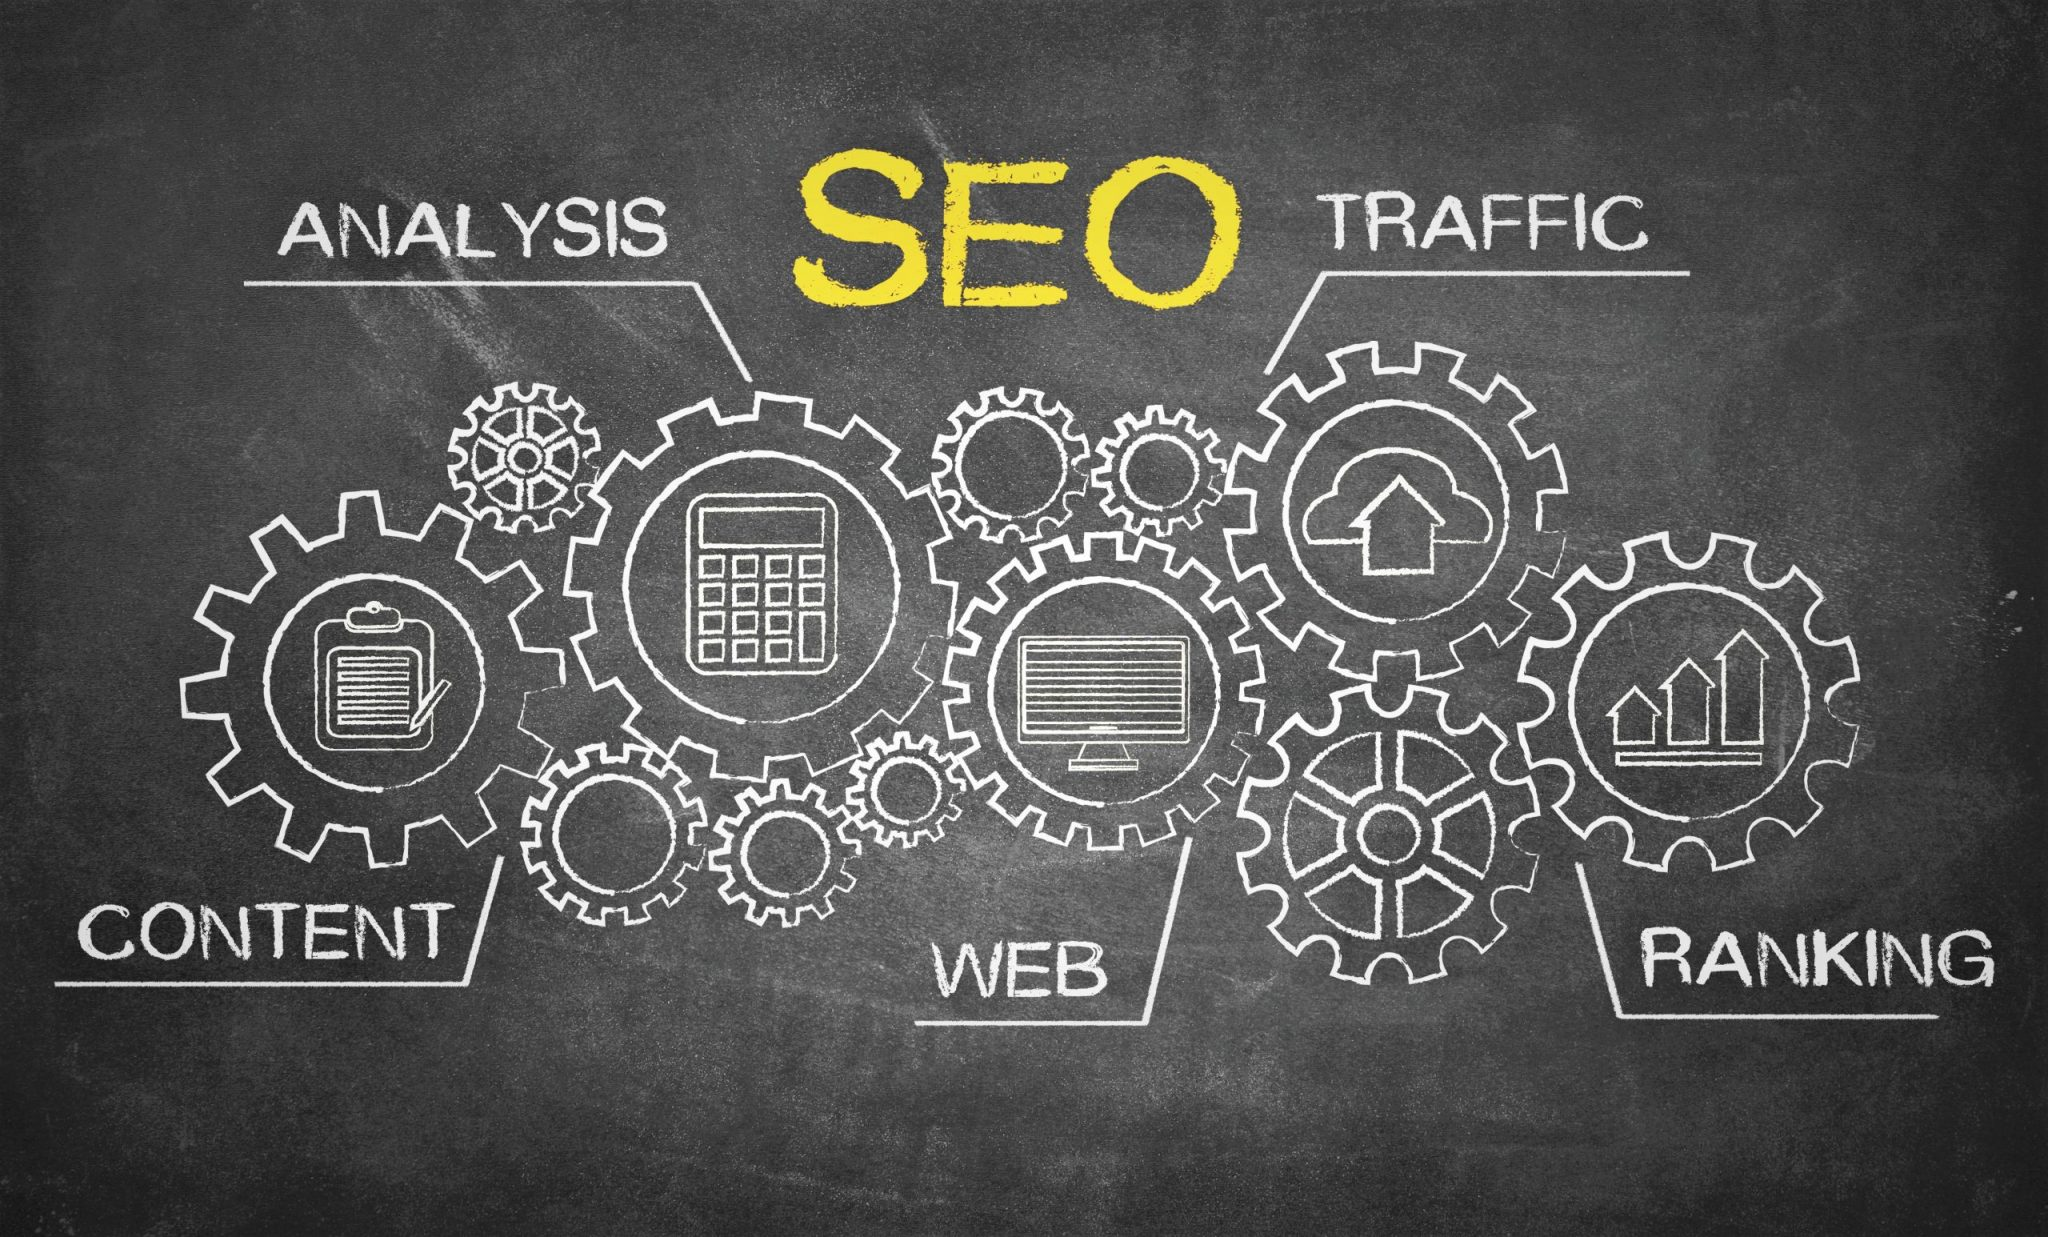 Seo course in Haryana -Netmax technologies seo course in haryana SEO course in Haryana with Certification & Live Projects seo search engine optimization concept 644911062 5ae3efdd04d1cf003cf95b58 scaled